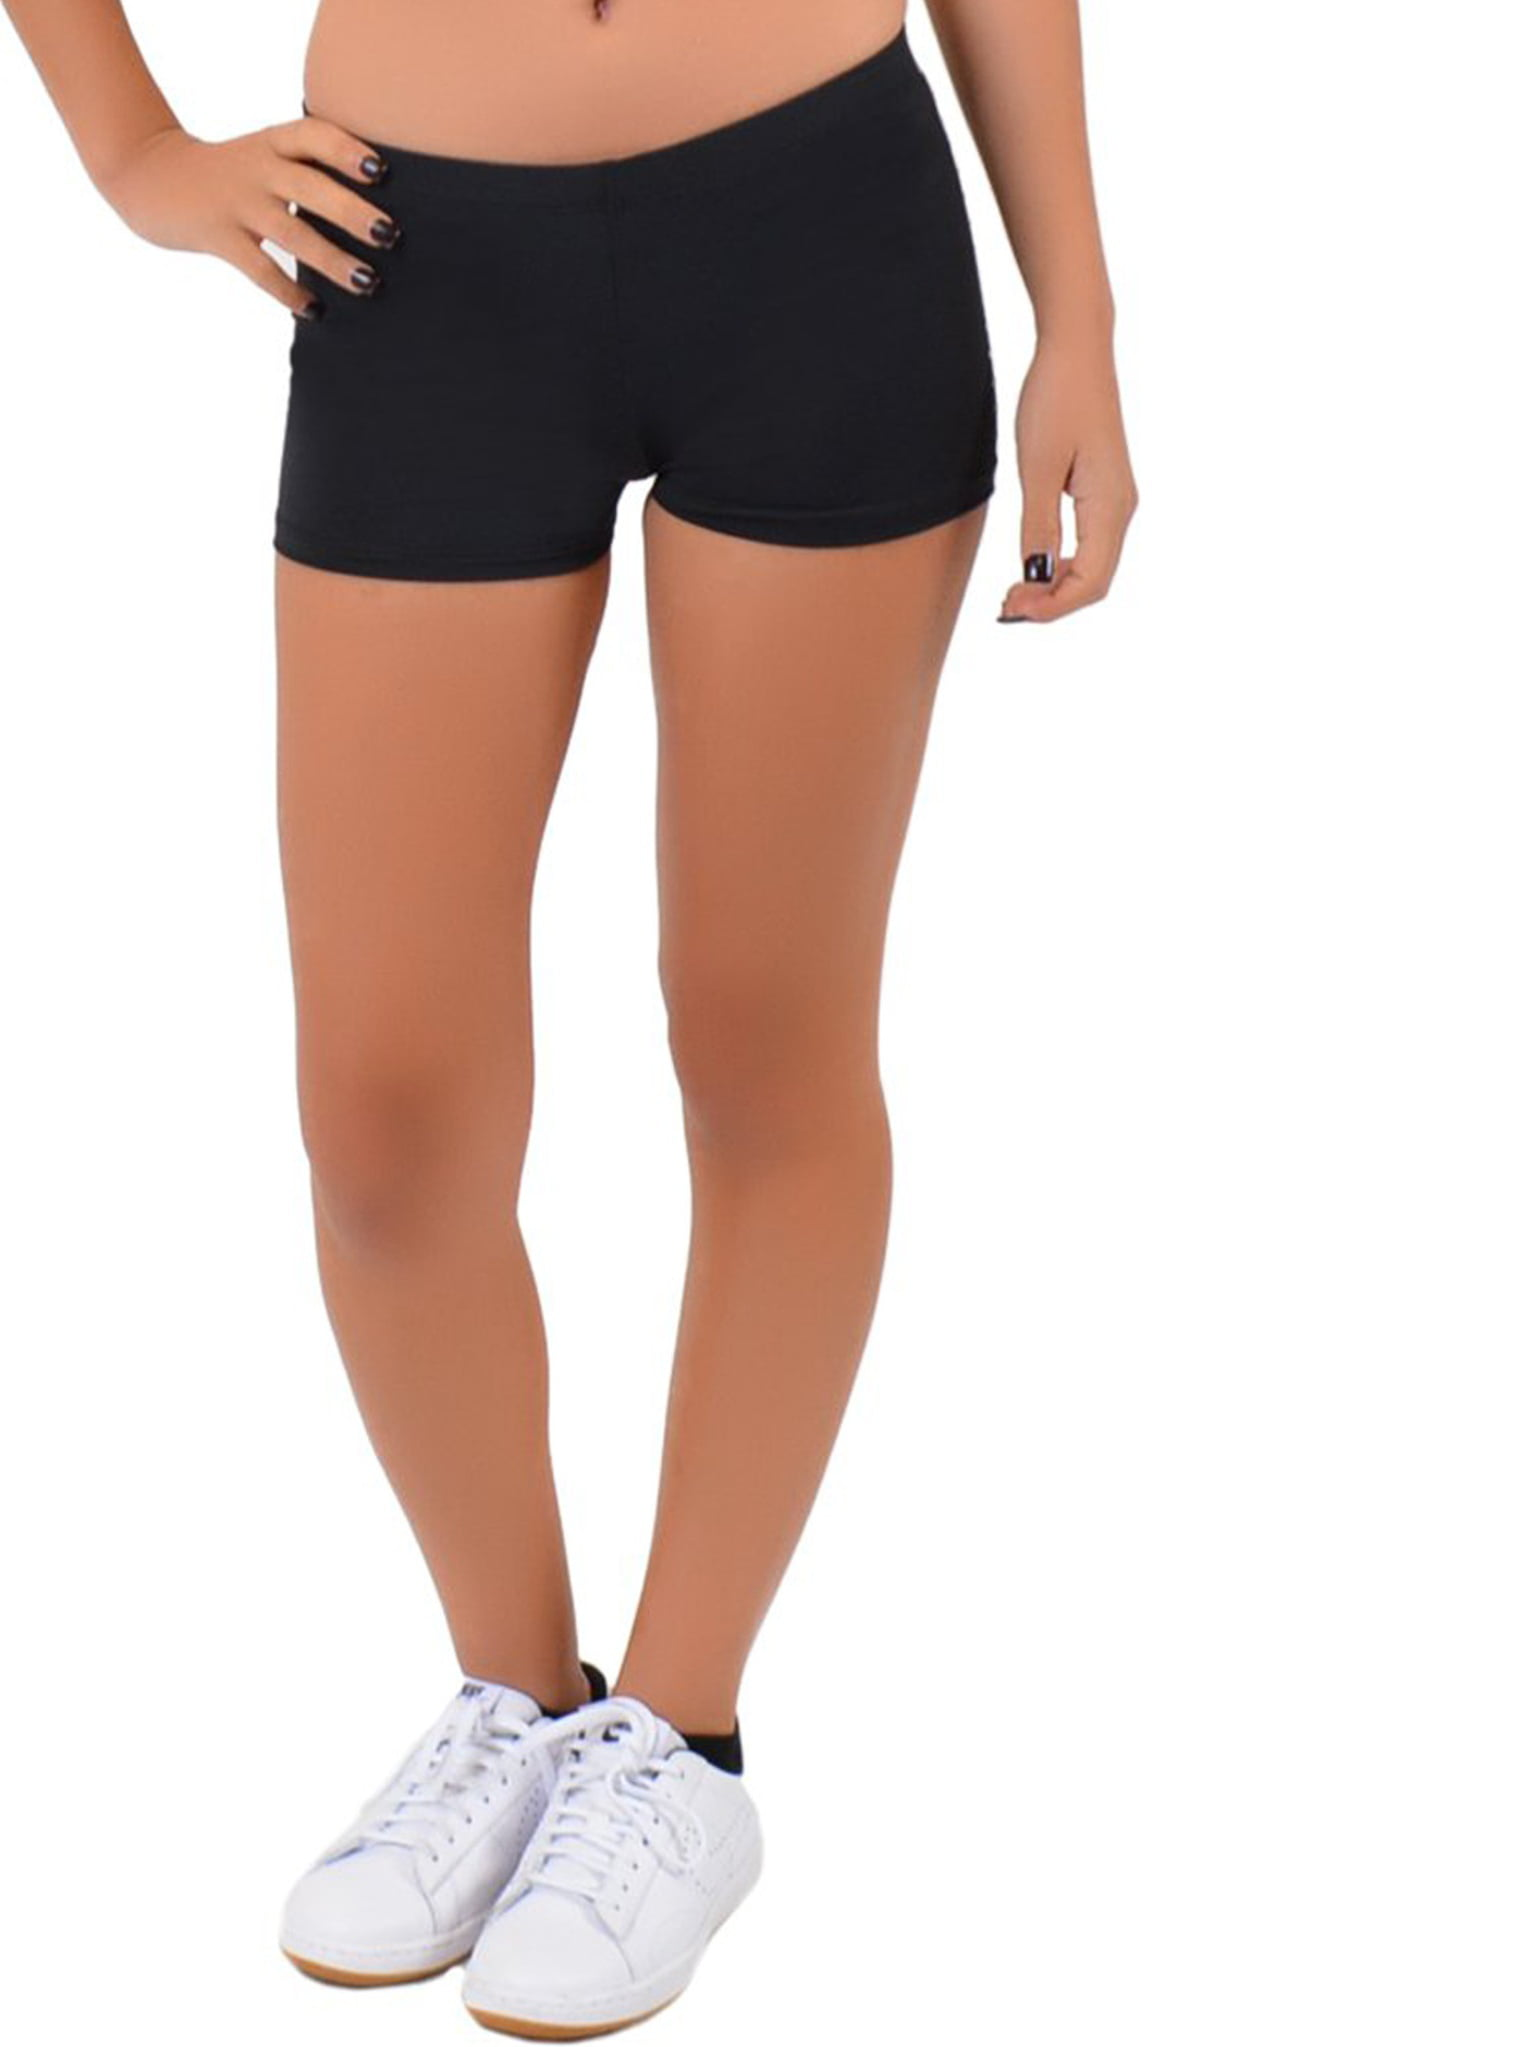 Womens Nylon Stretch Booty Shorts - Small 0-2  Black -2450